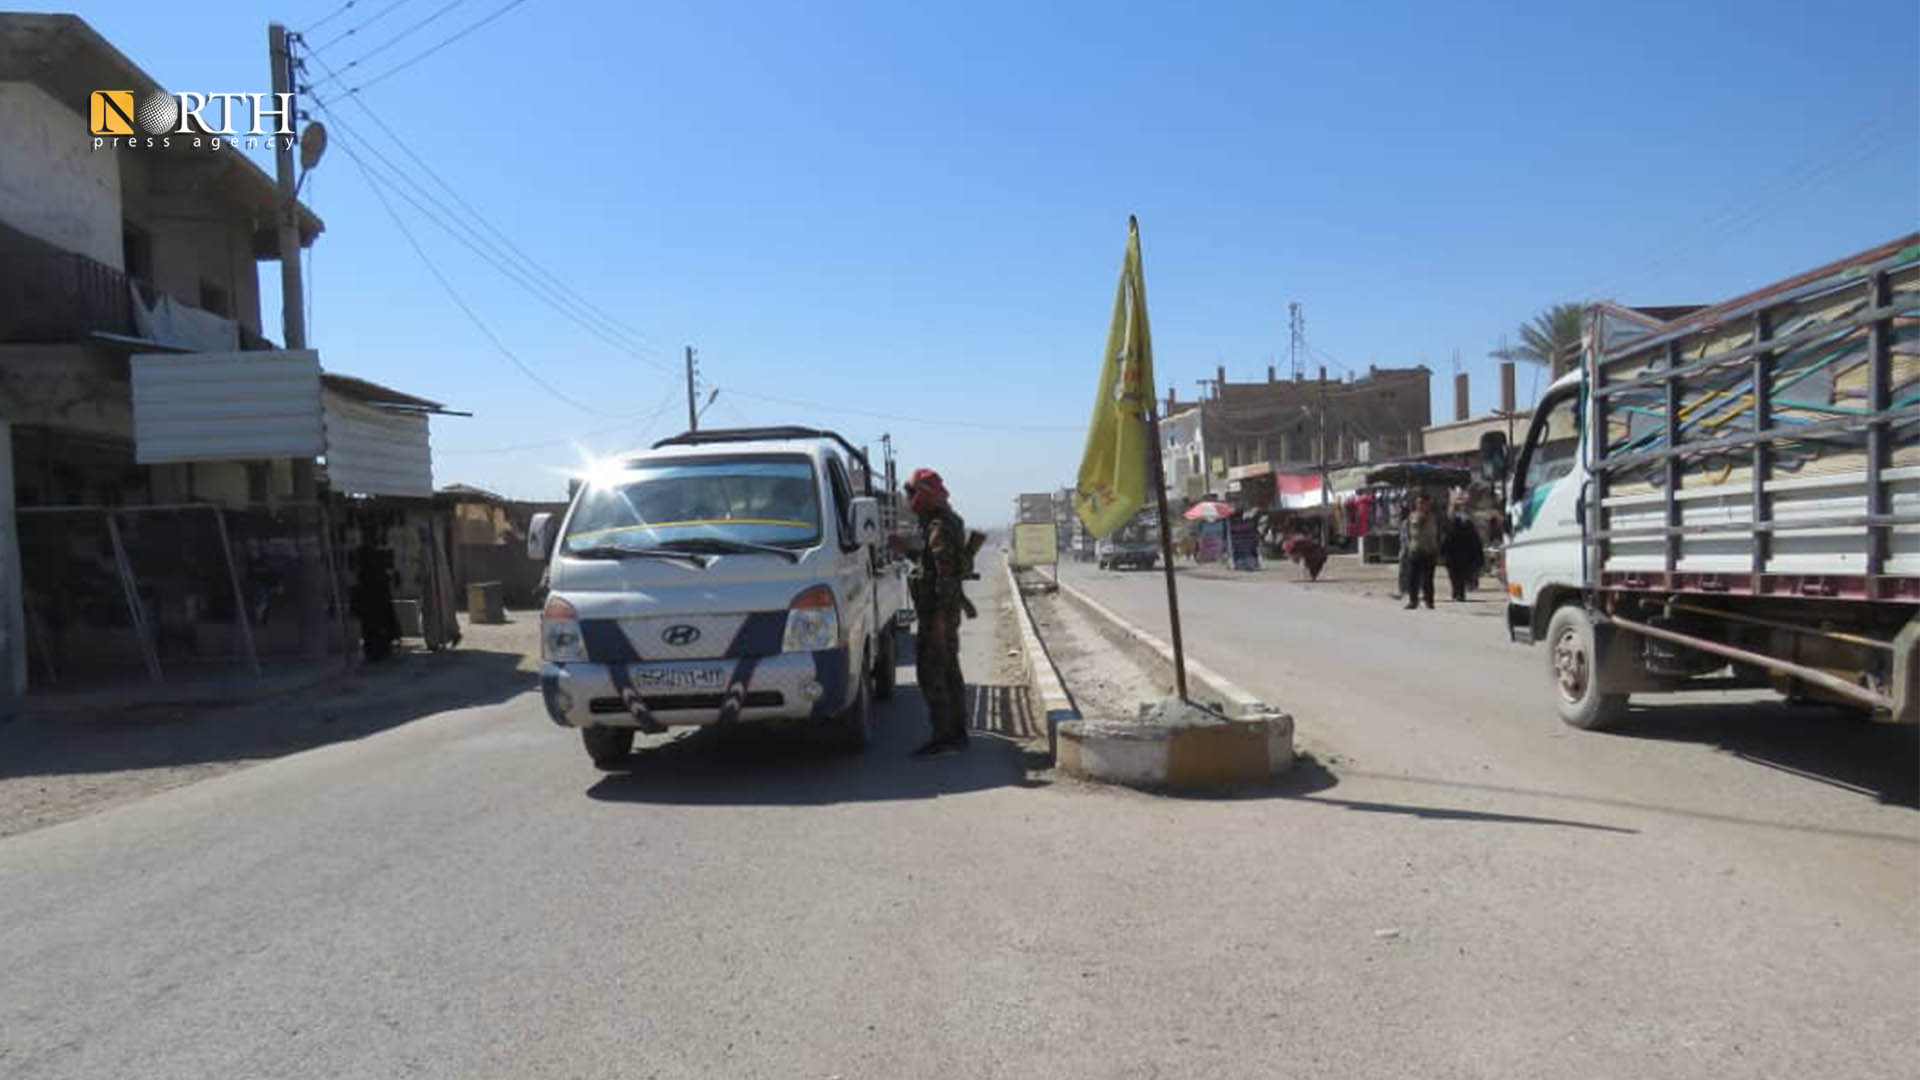 Syrian Democratic Forces' checkpoint in the town of Suwaydan, east of Deir ez-Zor – North Press.